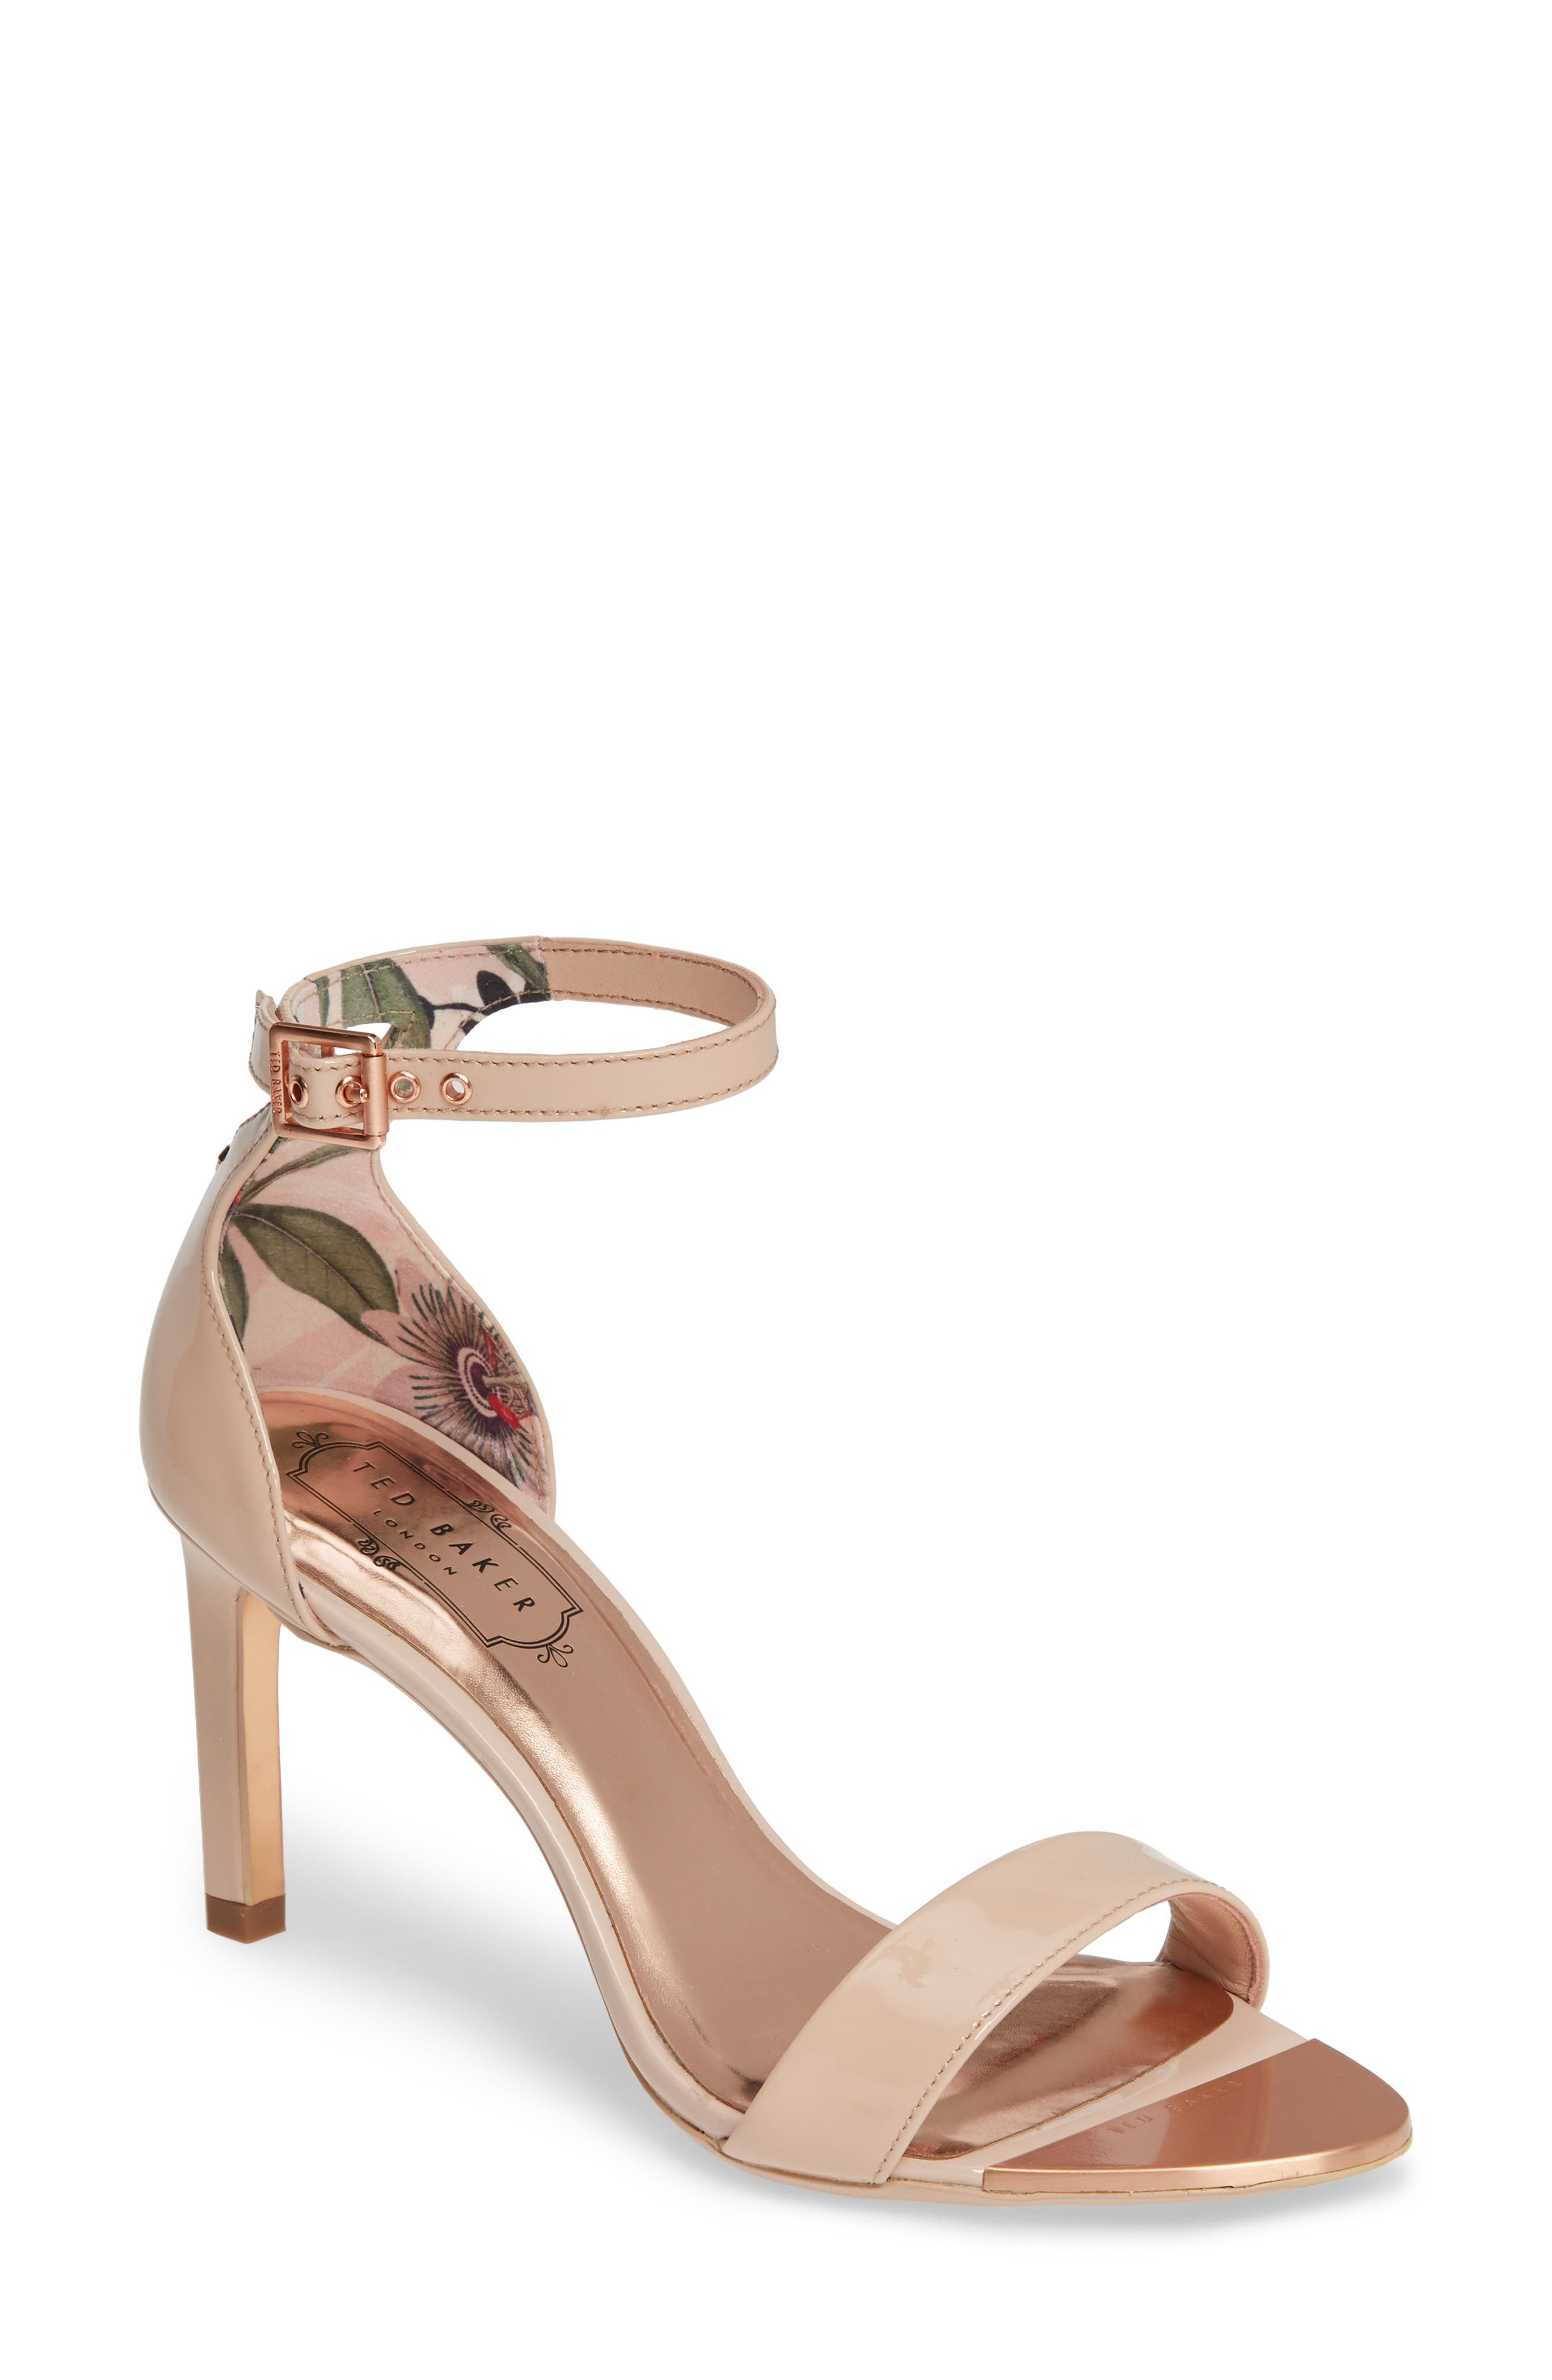 Ankle Strap Sandal, Main, color, NUDE PATENT LEATHER